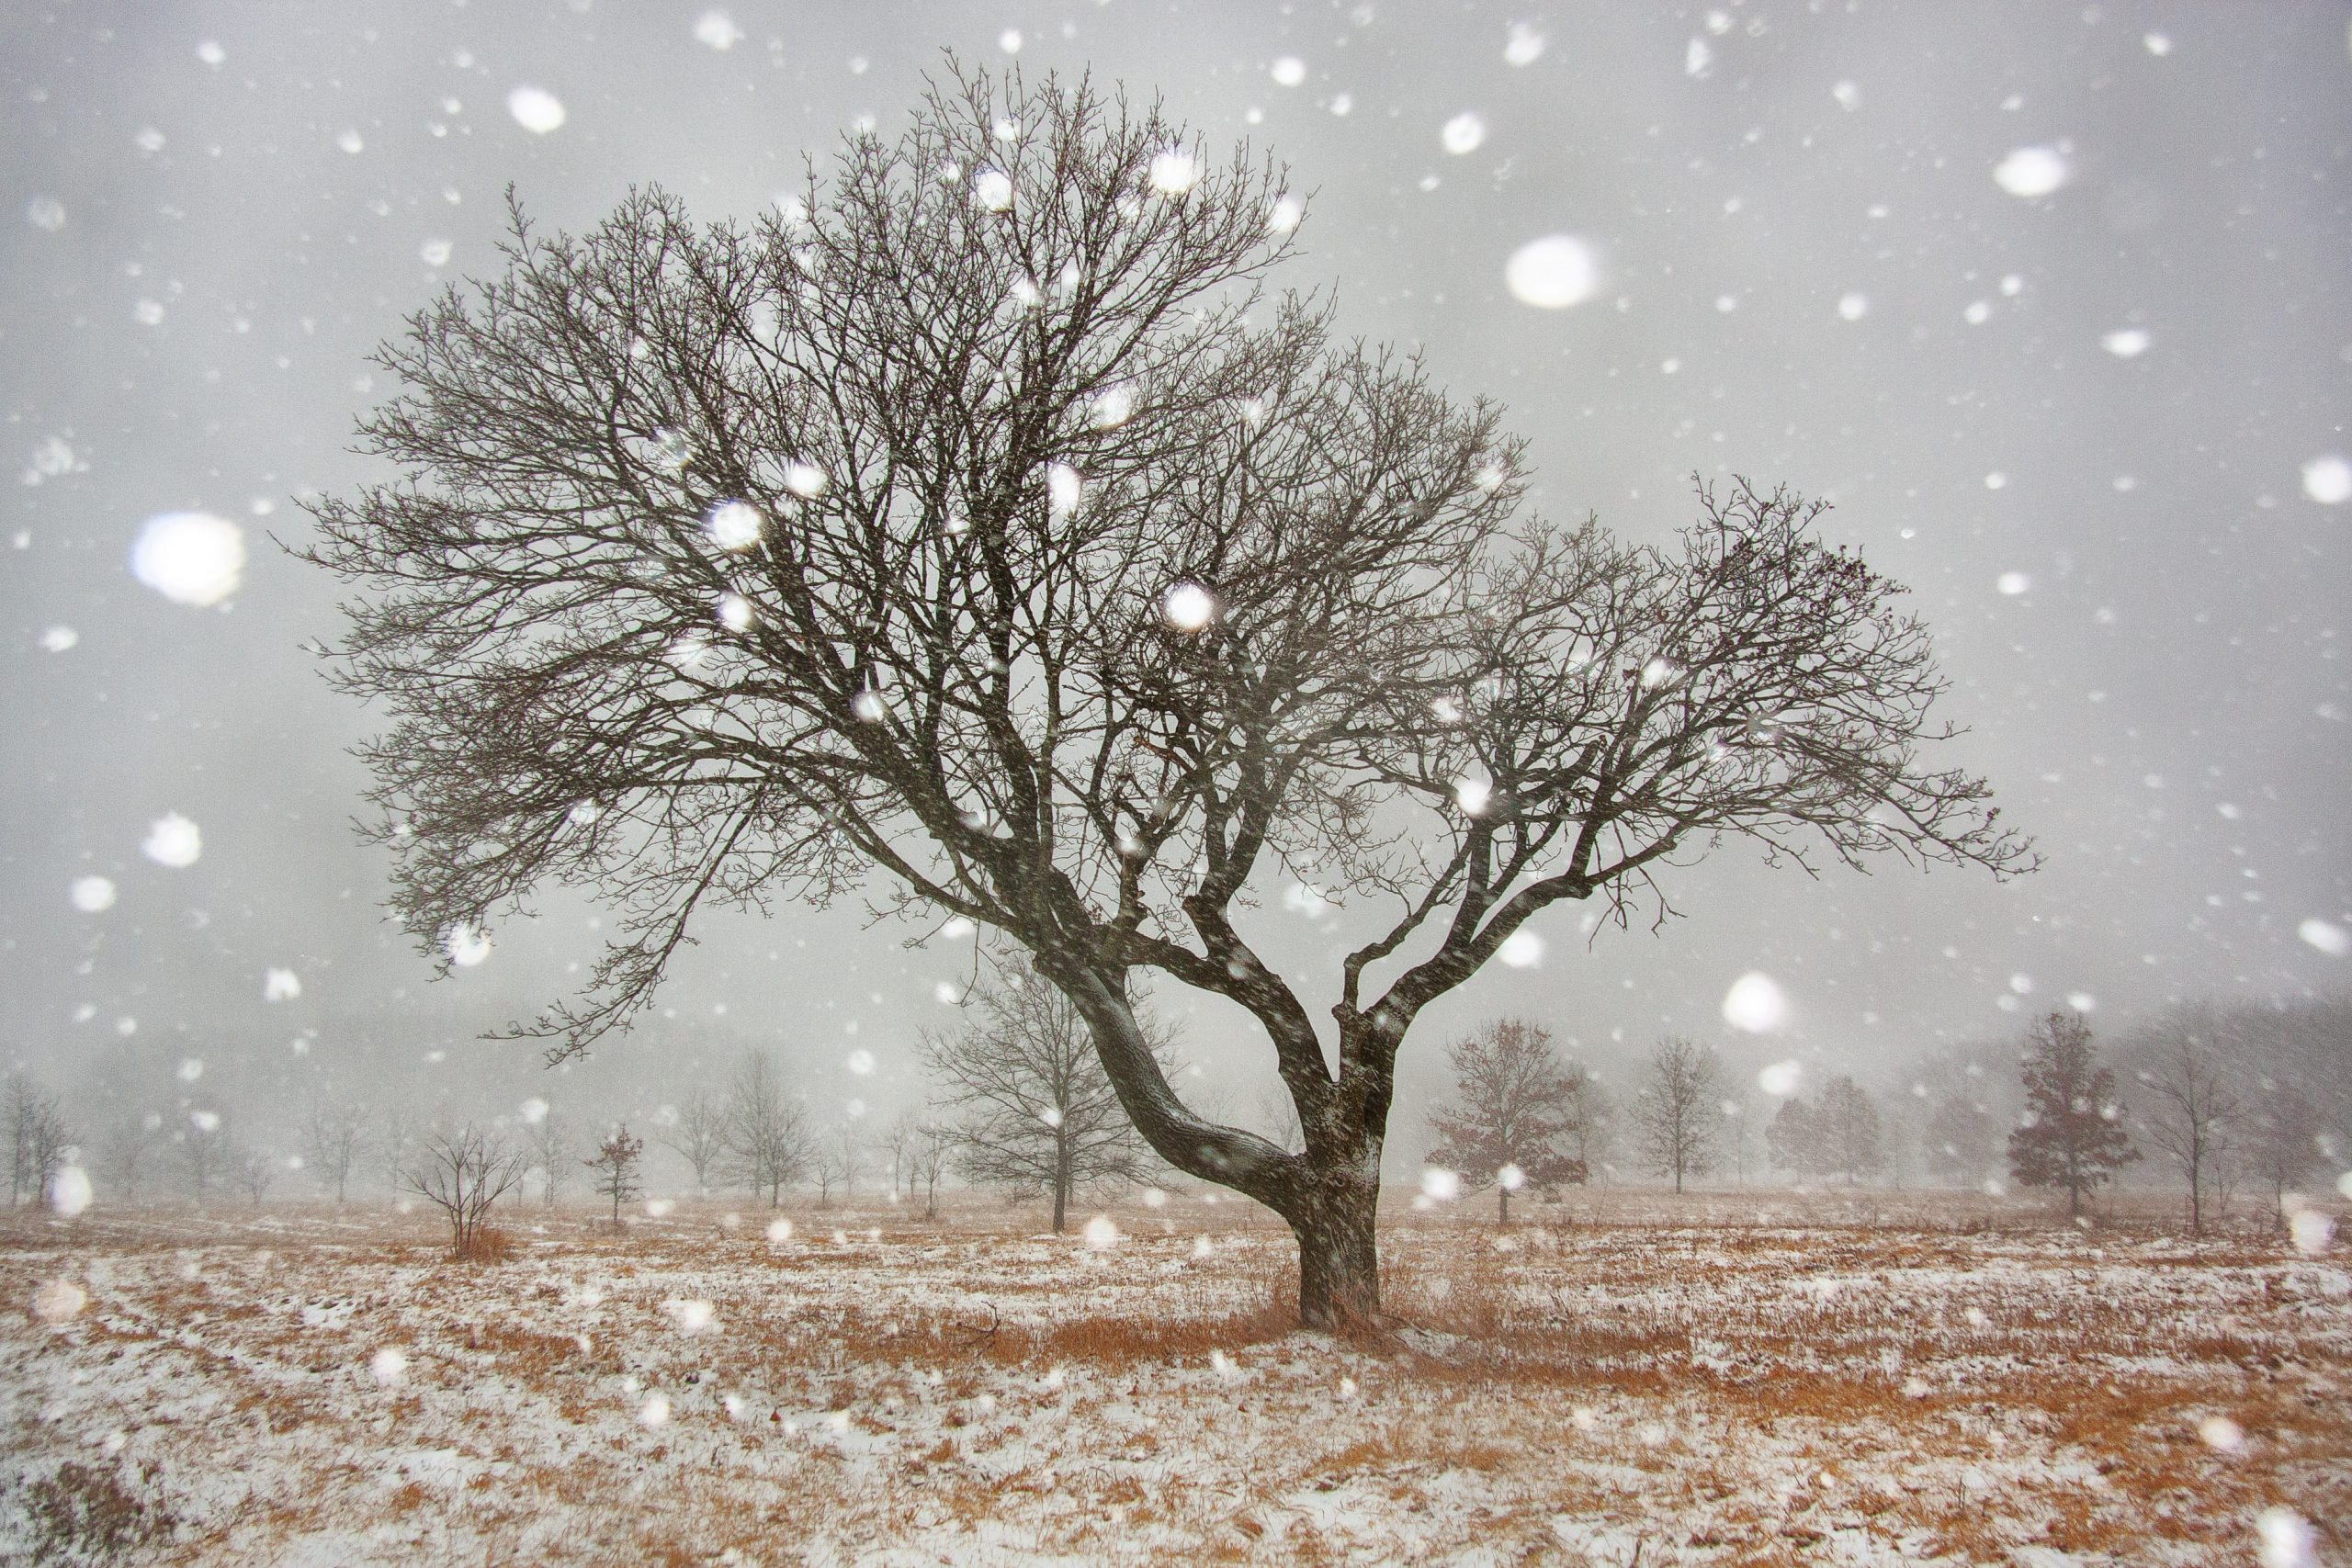 The photographer's favorite tree stands steady in a snowstorm on March 23, 2015. nature, landscape, tree, winter, snow, storm Photo: Tom Nicol